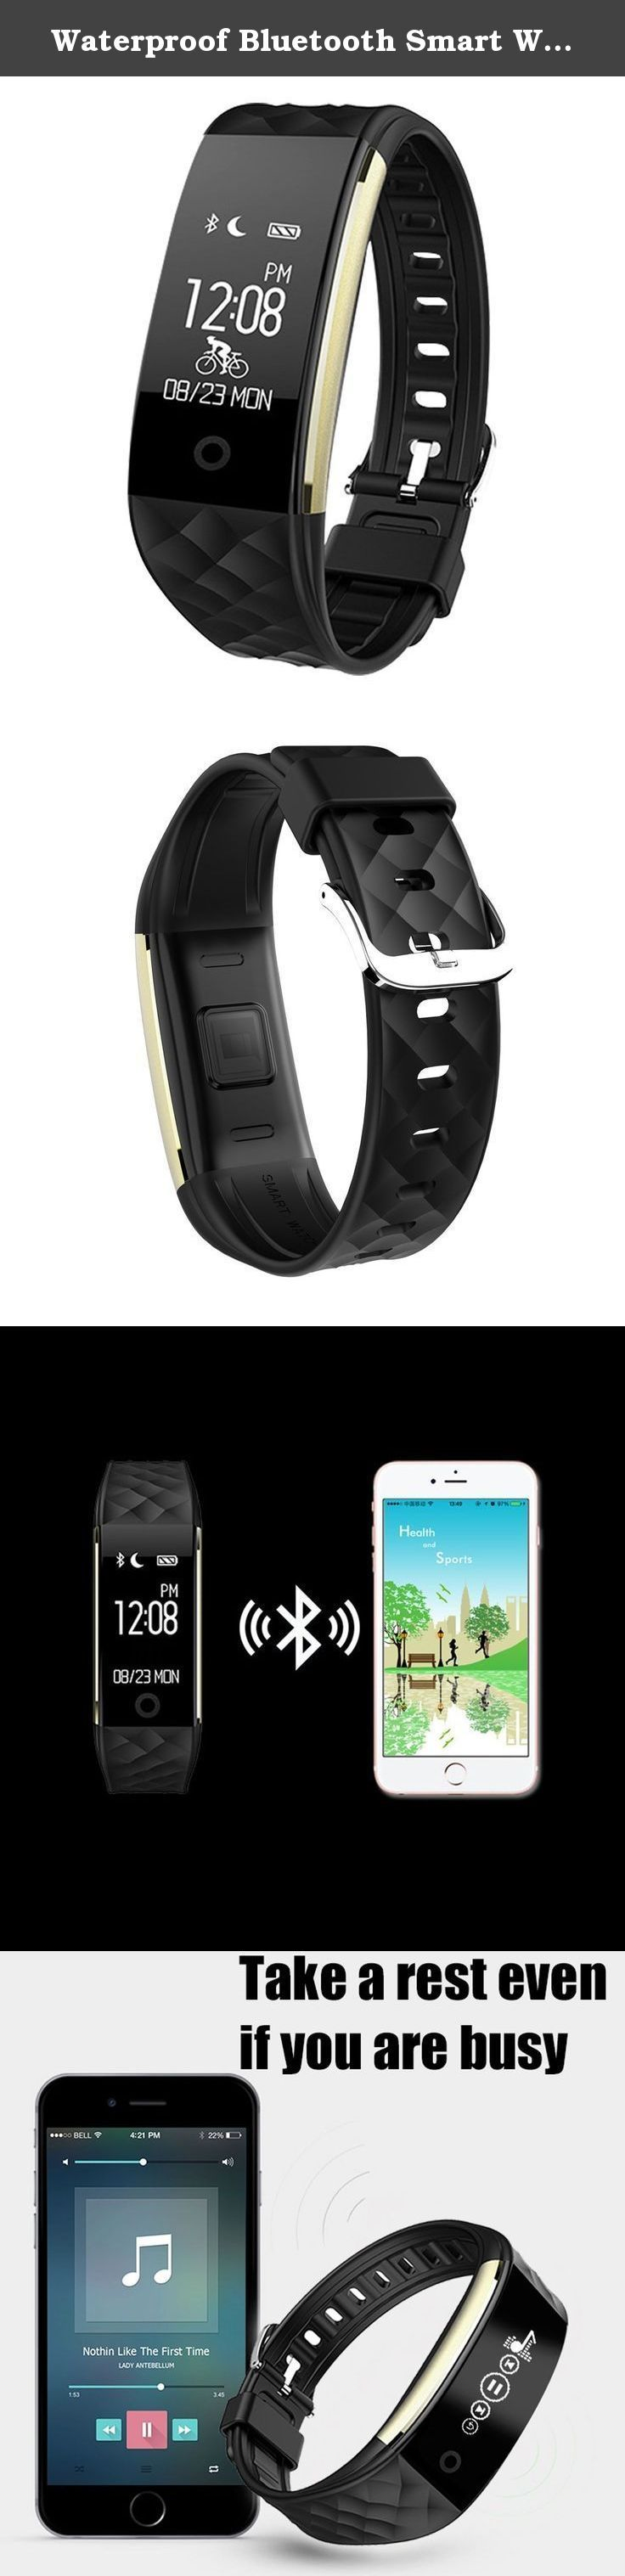 Waterproof Bluetooth Smart Wear Bracelet with Heart Rate Monitor Pedometer Calorie Tracker, Sleeping monitor Sport Wrist Smart Watch compatible with Android IOS Smartphones (Black). Specification: APK Name: SmartWristBand CPU: BT V4.0 BLE Display: 0.96 inch, 64*128 Acceleration: 3-axis G-sensor Heart rate: Dynamic heart rate detection Battery: 90ma Lithium-ion polymer rechargeable battery Motor: Built-in,remind with vibration Font: Full character display Charge: 5V USB jack, charge by PC…